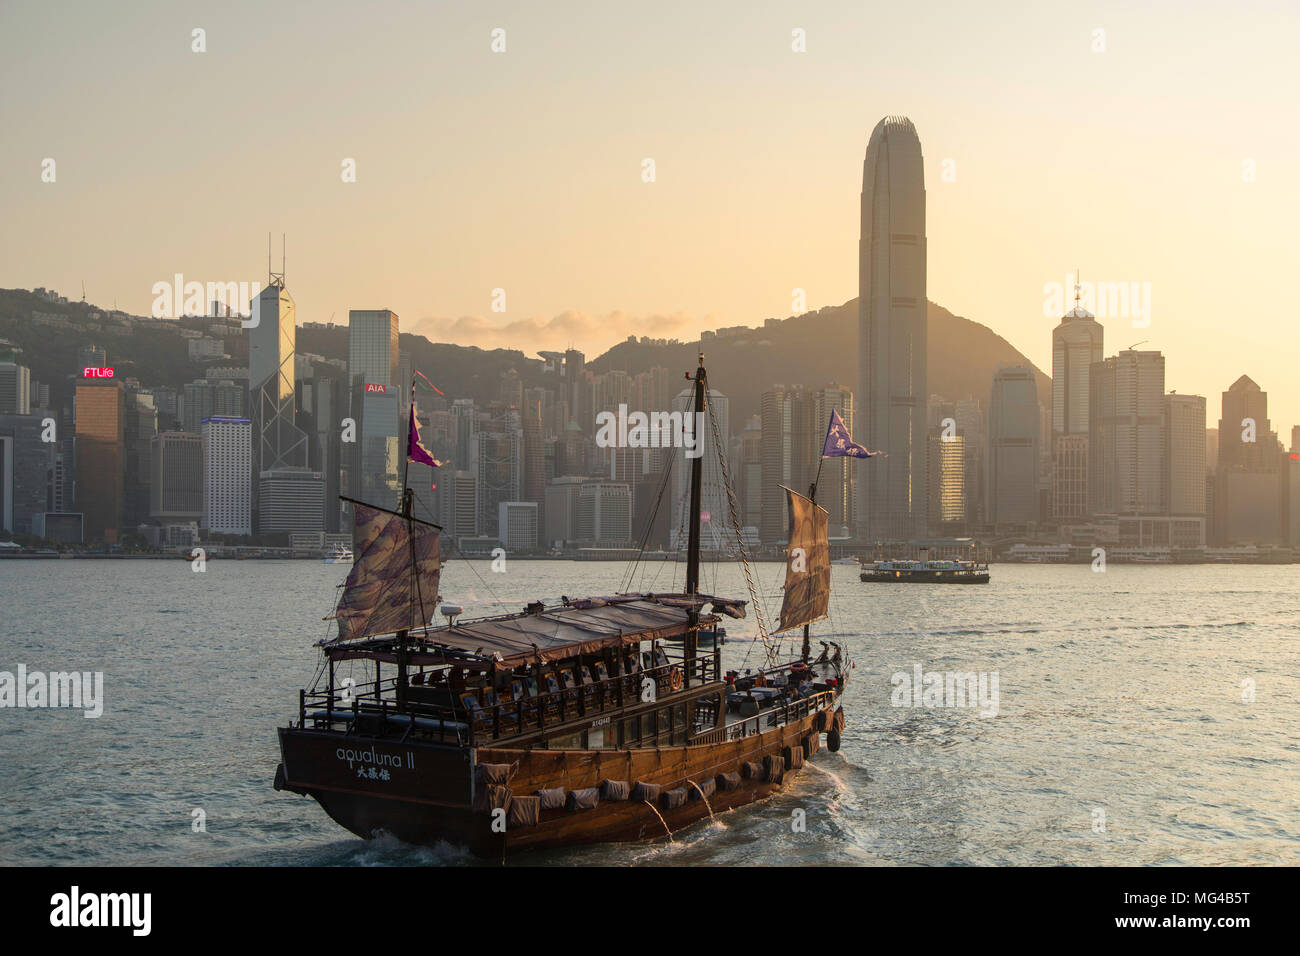 Junk boat in Victoria Harbour, Hong Kong Island, Hong Kong Stock Photo